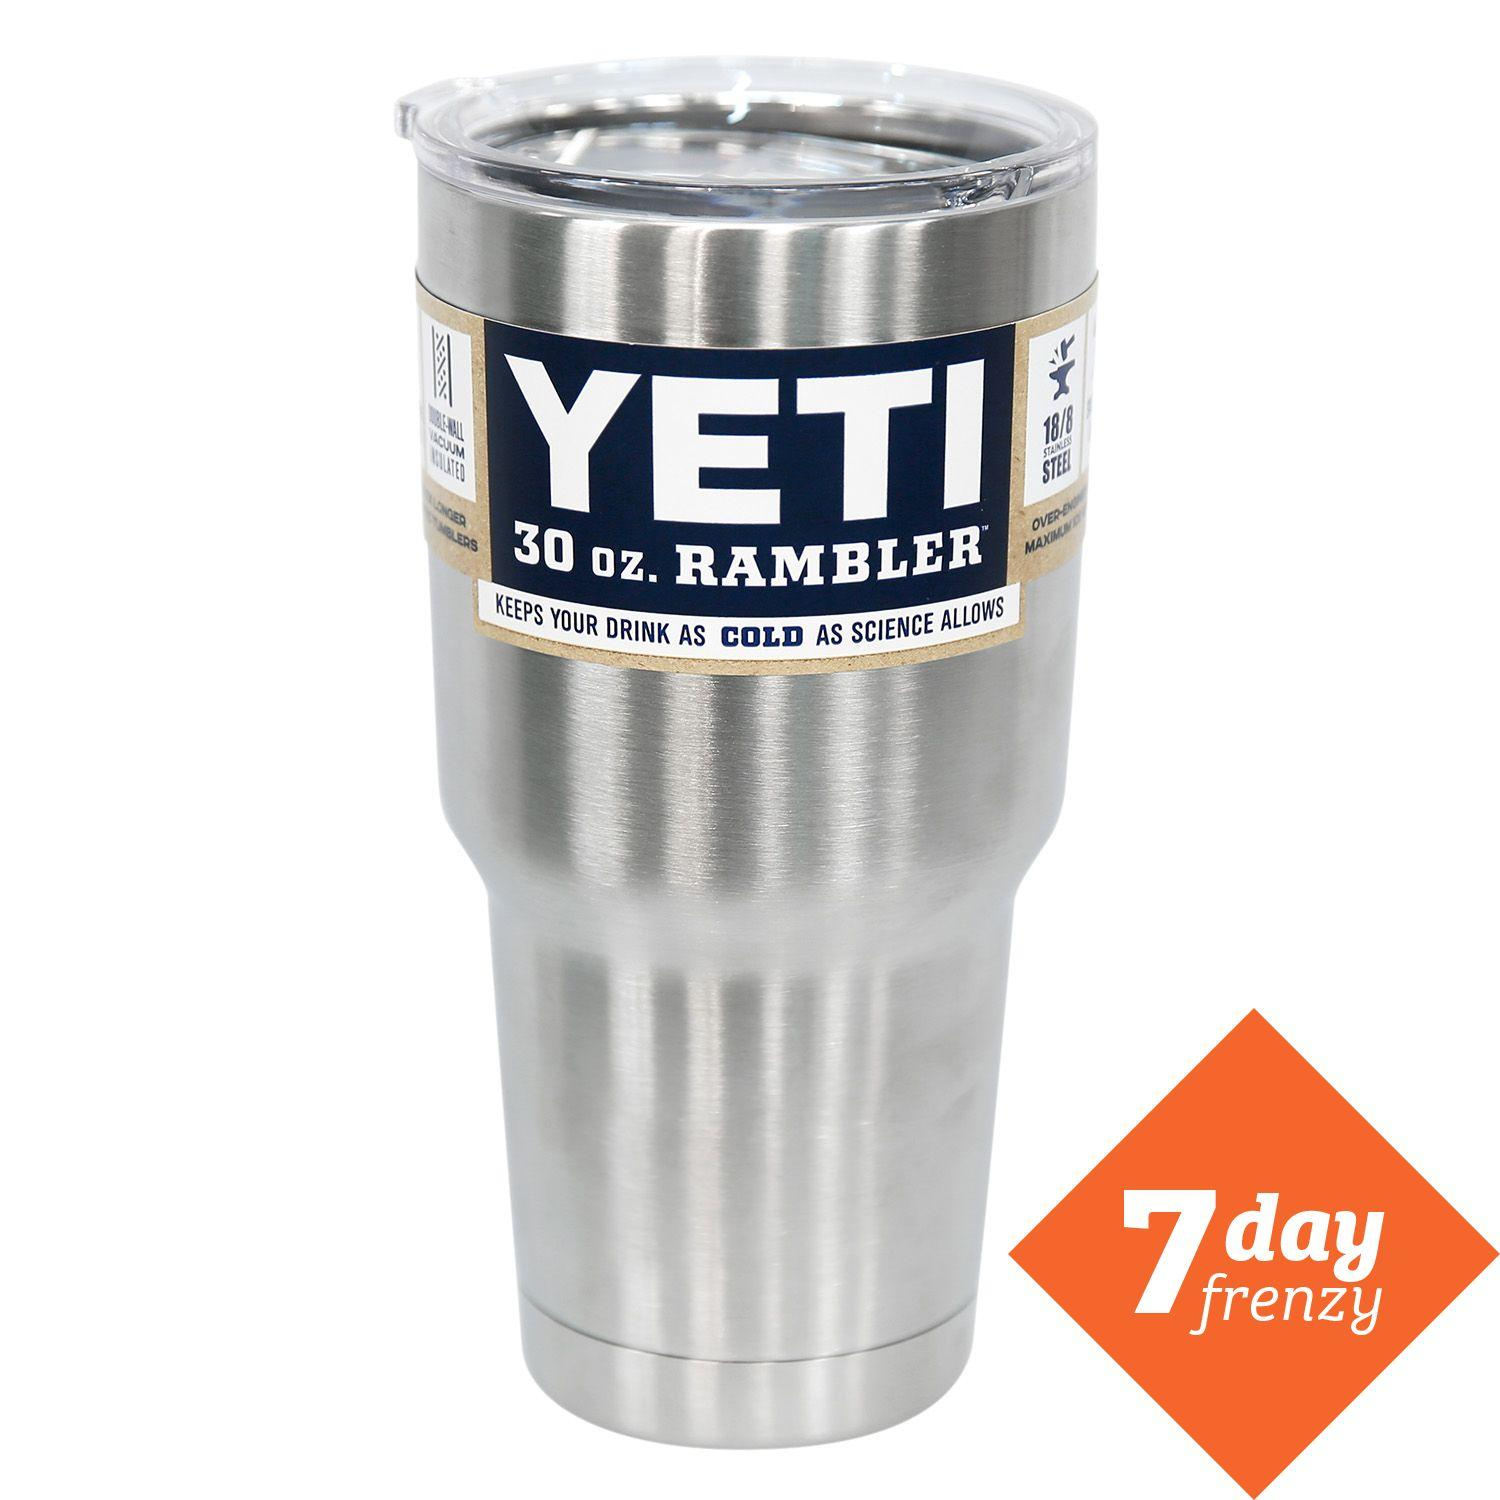 $30 YETI Rambler 30 oz. Insulated Cup